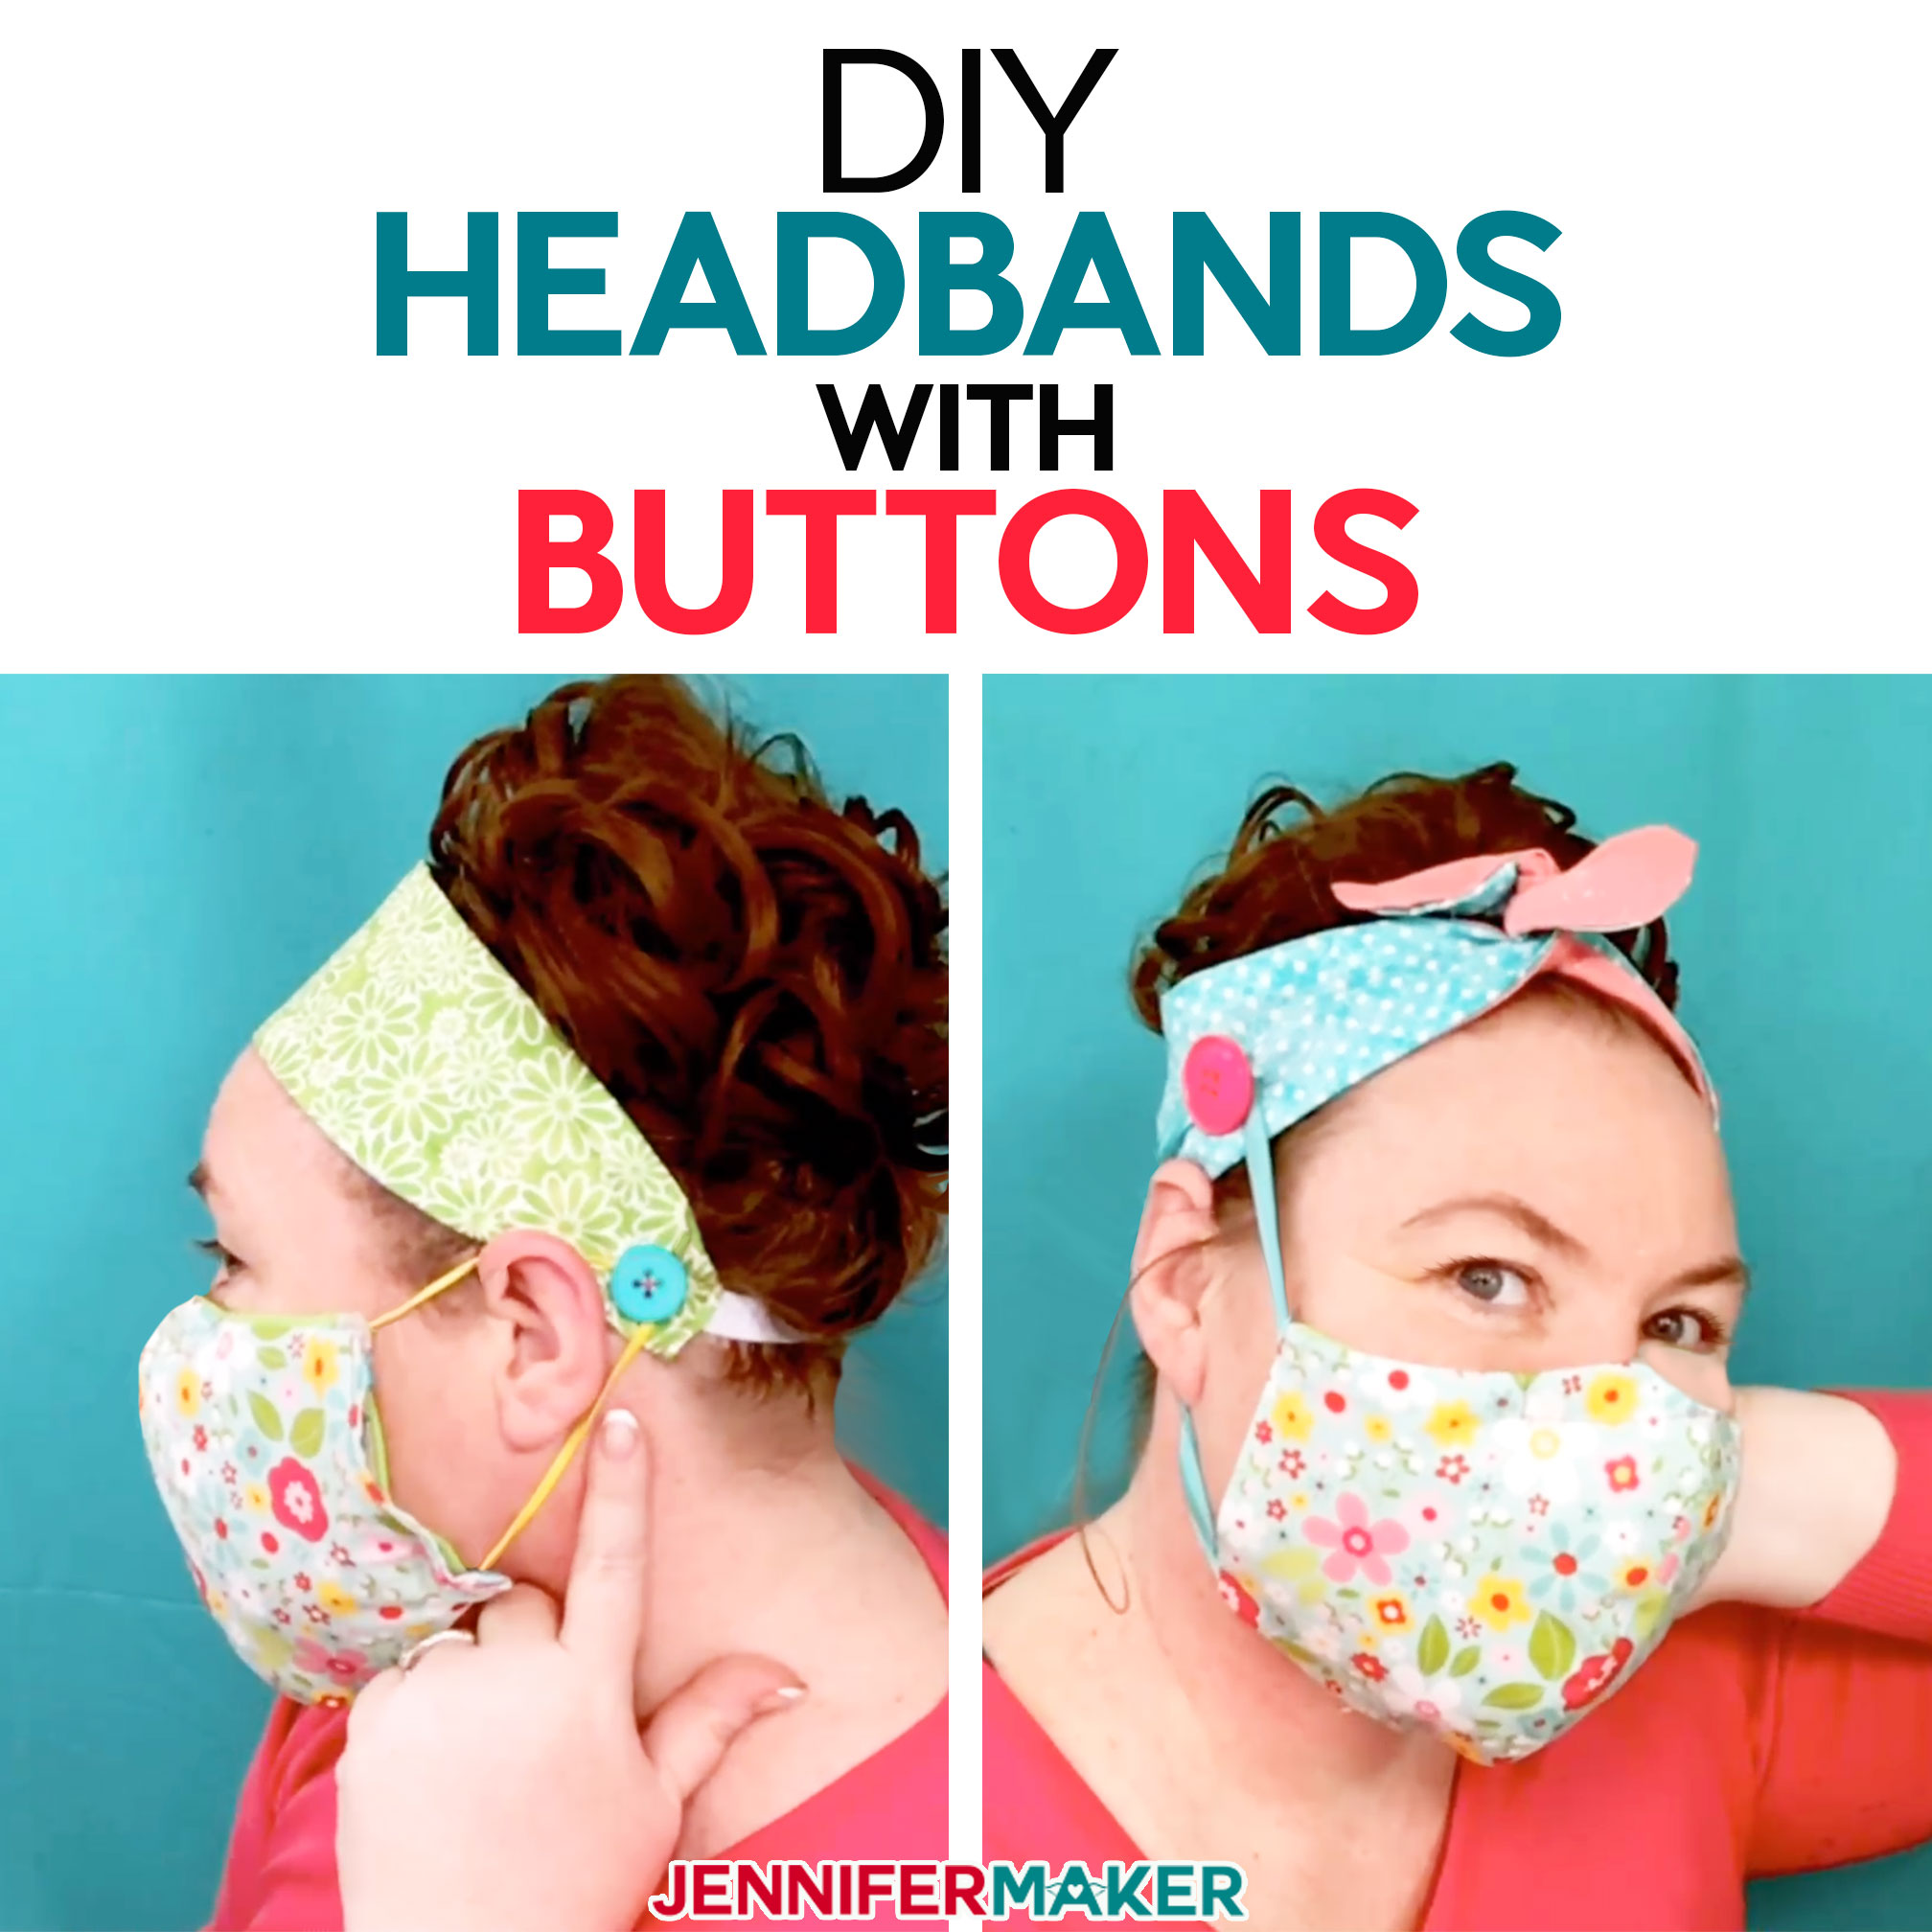 DIY Headbands with Buttons For Masks - Jennifer Maker